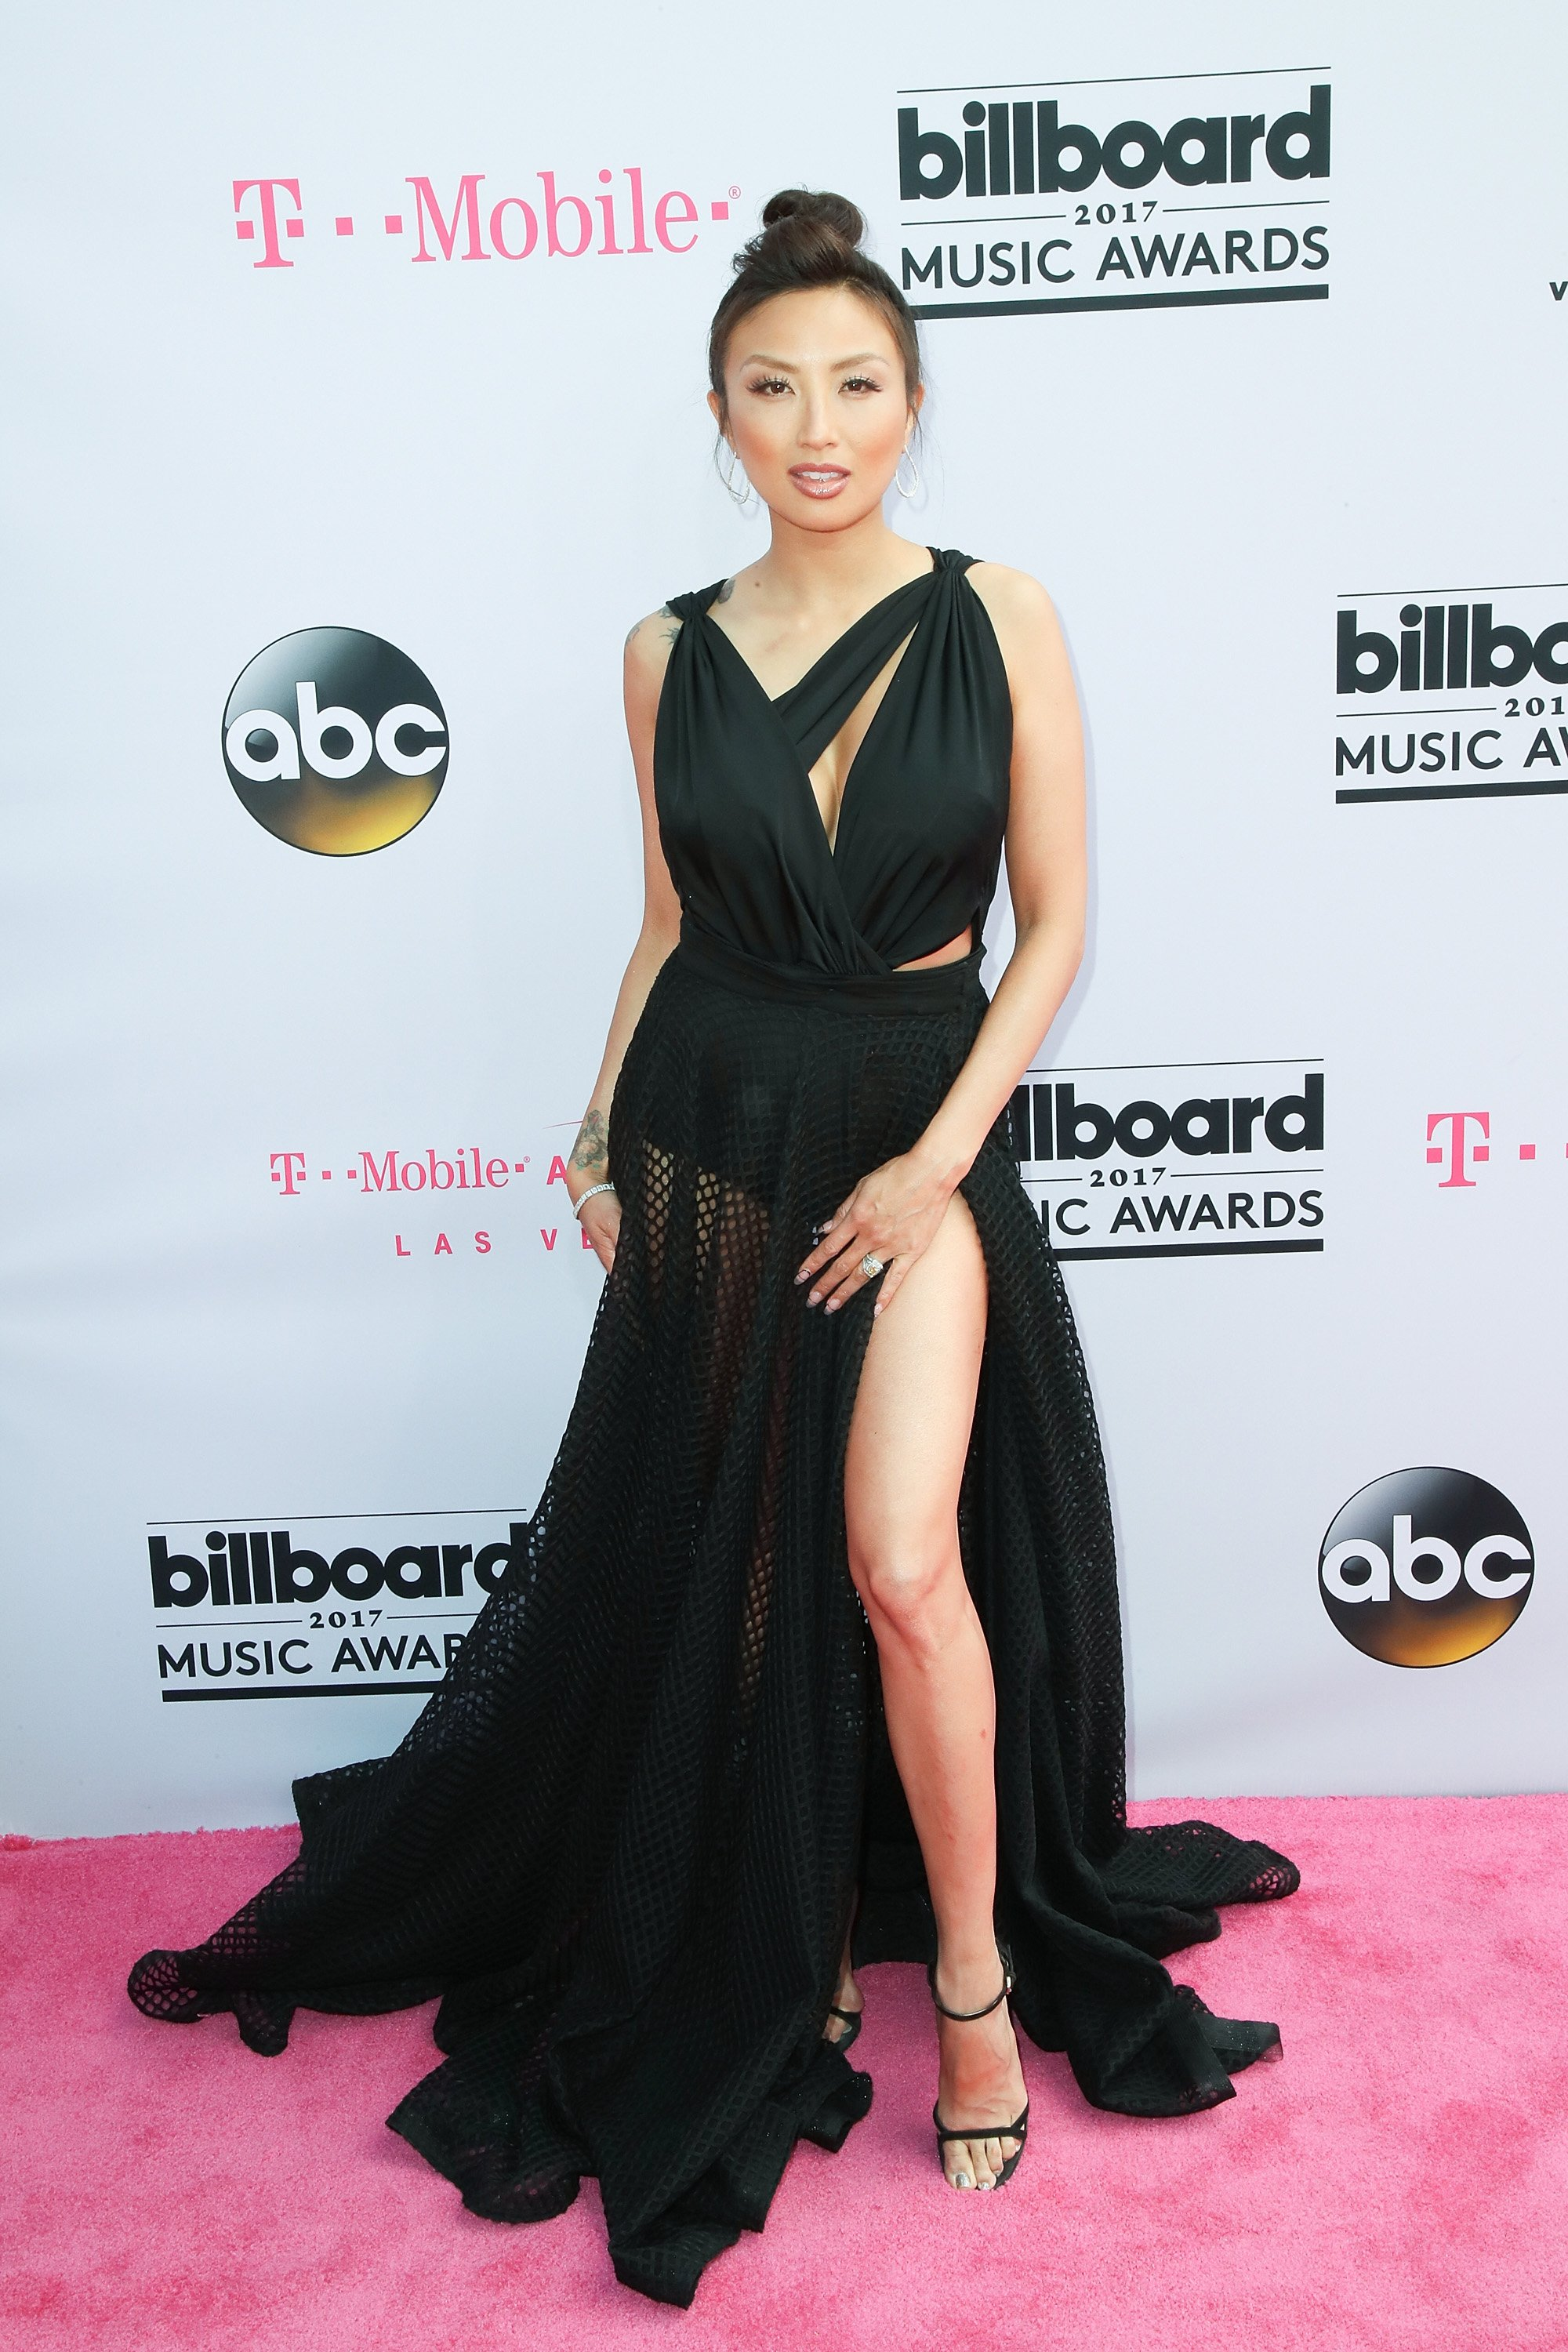 TV personality Jeannie Mai attends the 2017 Billboard Music Awards at the T-Mobile Arena on May 21, 2017 in Las Vegas, Nevada.| Photos: Getty Images